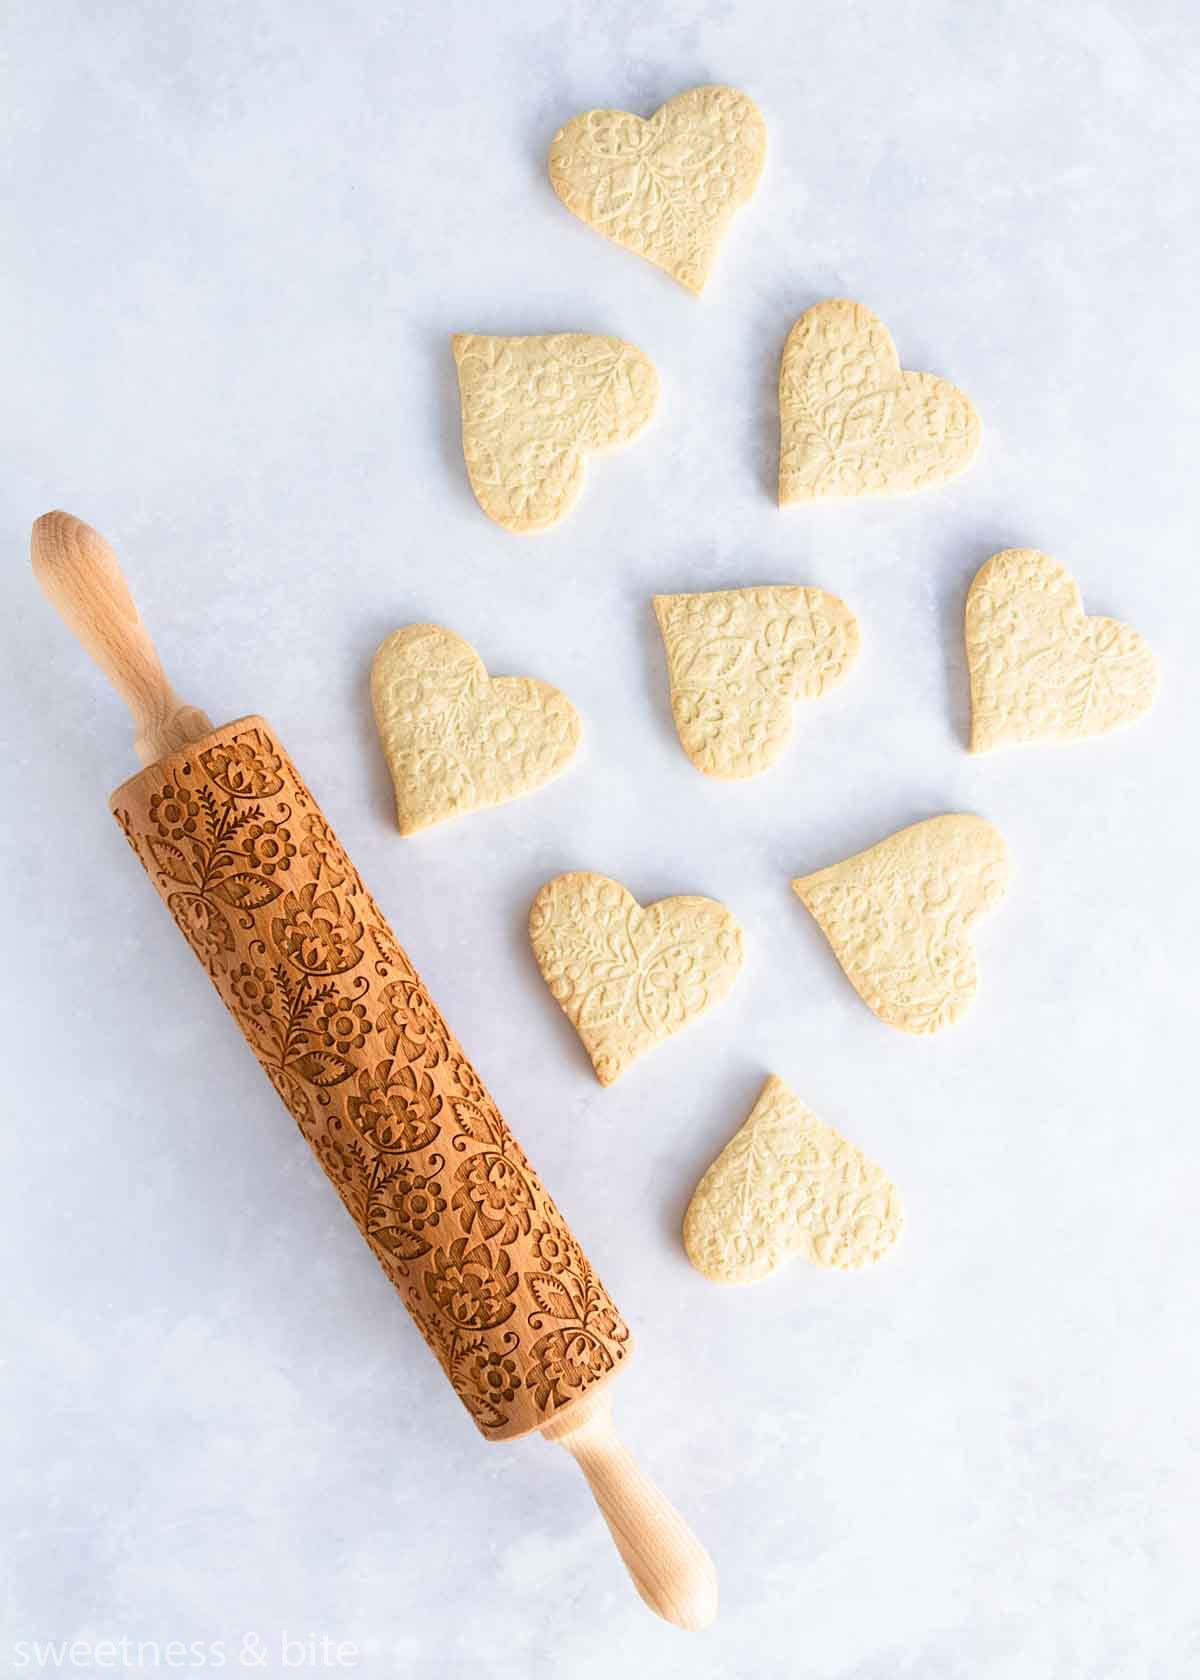 Heart shaped cookies embossed with a floral pattern, with the embossing rolling pin.